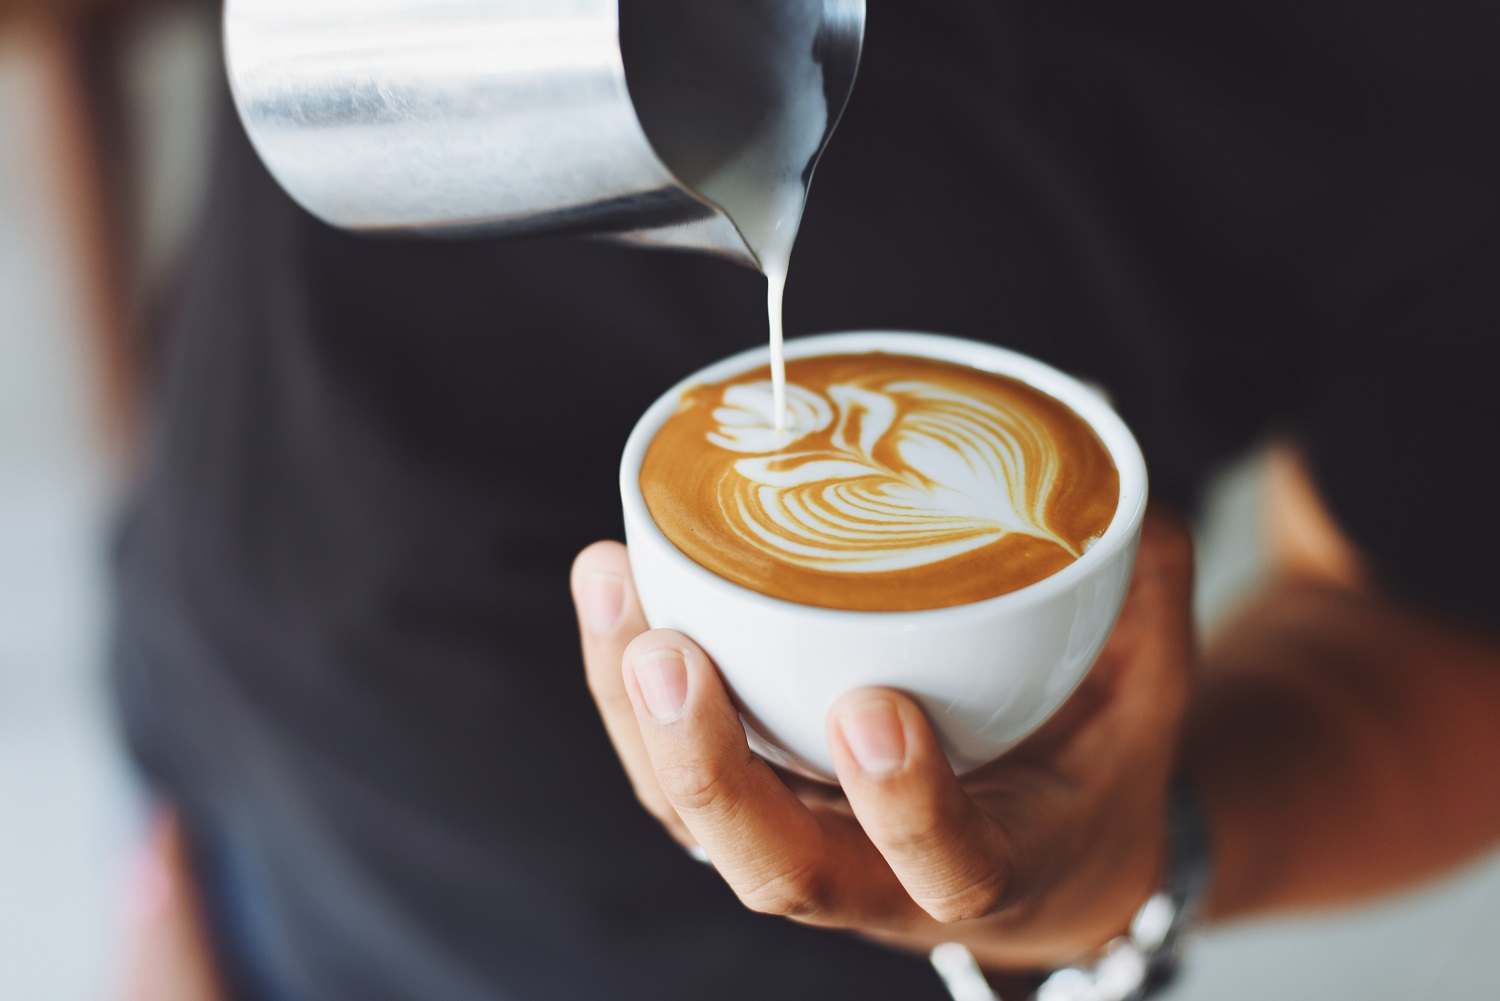 What Is A Latte? – 5 Latte Facts You Probably Didn't Know